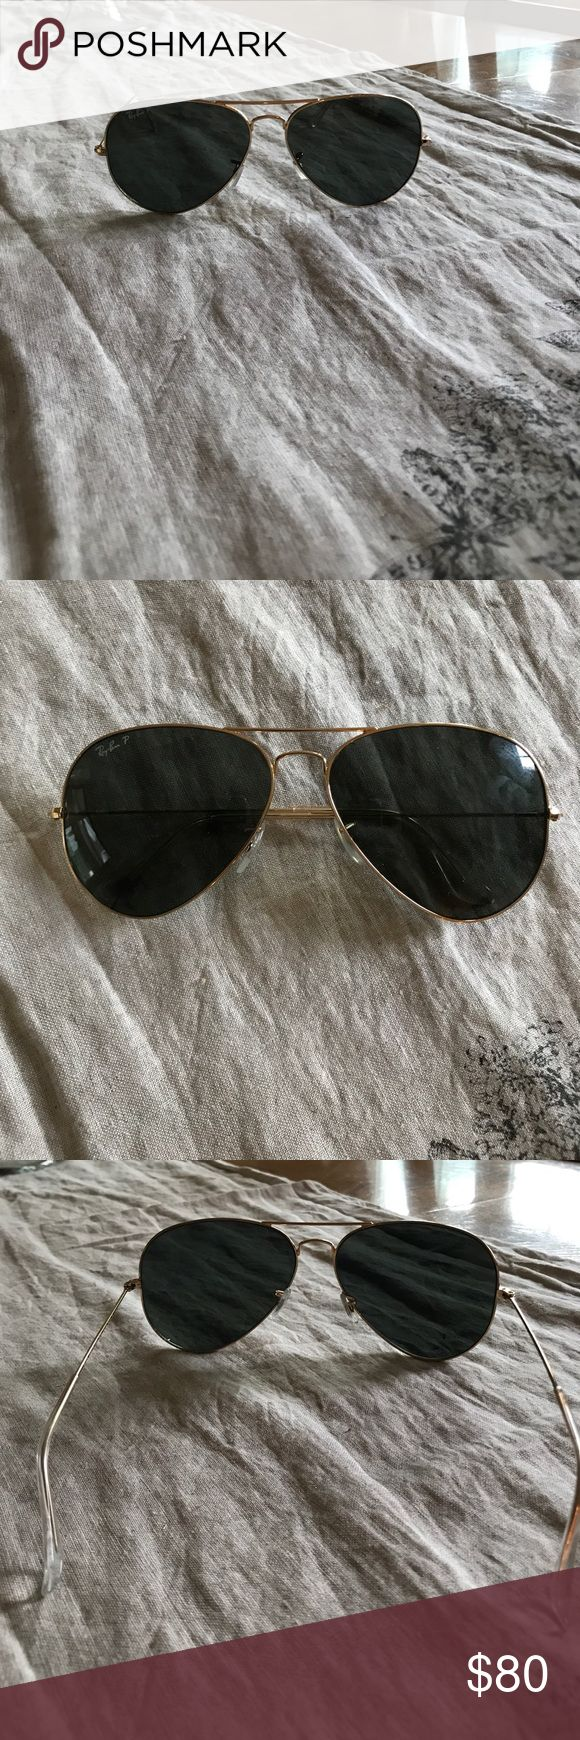 POLARIZED black Ray Bans 62 MM NEW condition - worn a handful of times but look BRAND NEW. Gold and black polarized Ray Ban aviators Ray-Ban Accessories Sunglasses